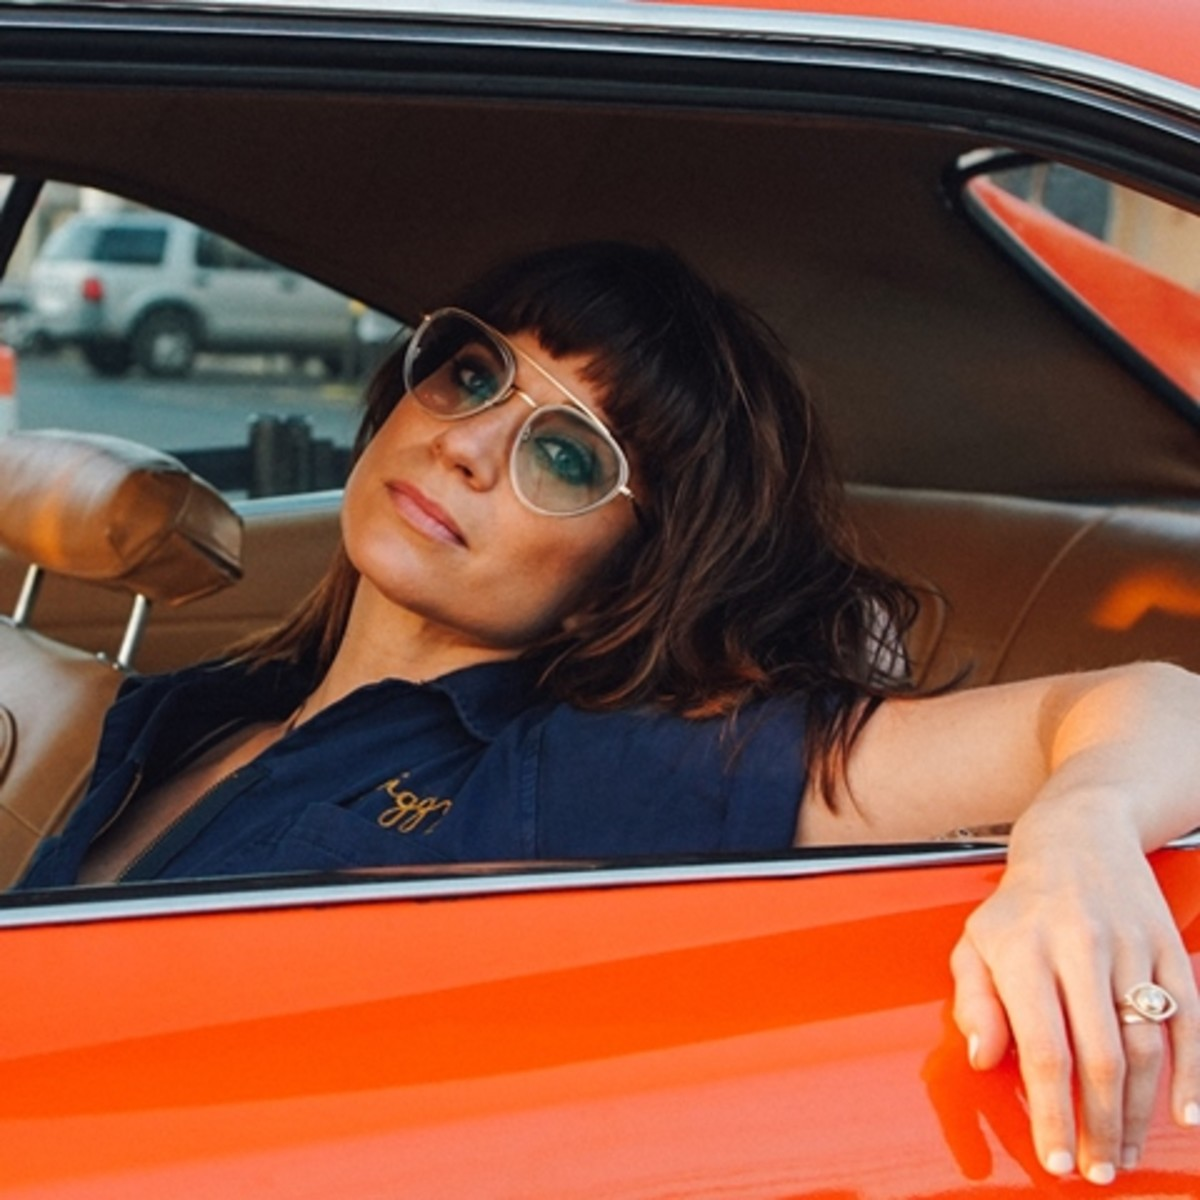 """Nicole Atkins is currently touring in support of her fourth album, which is titled """"Goodnight Rhonda Lee."""" (Photo by Anna Webber)"""